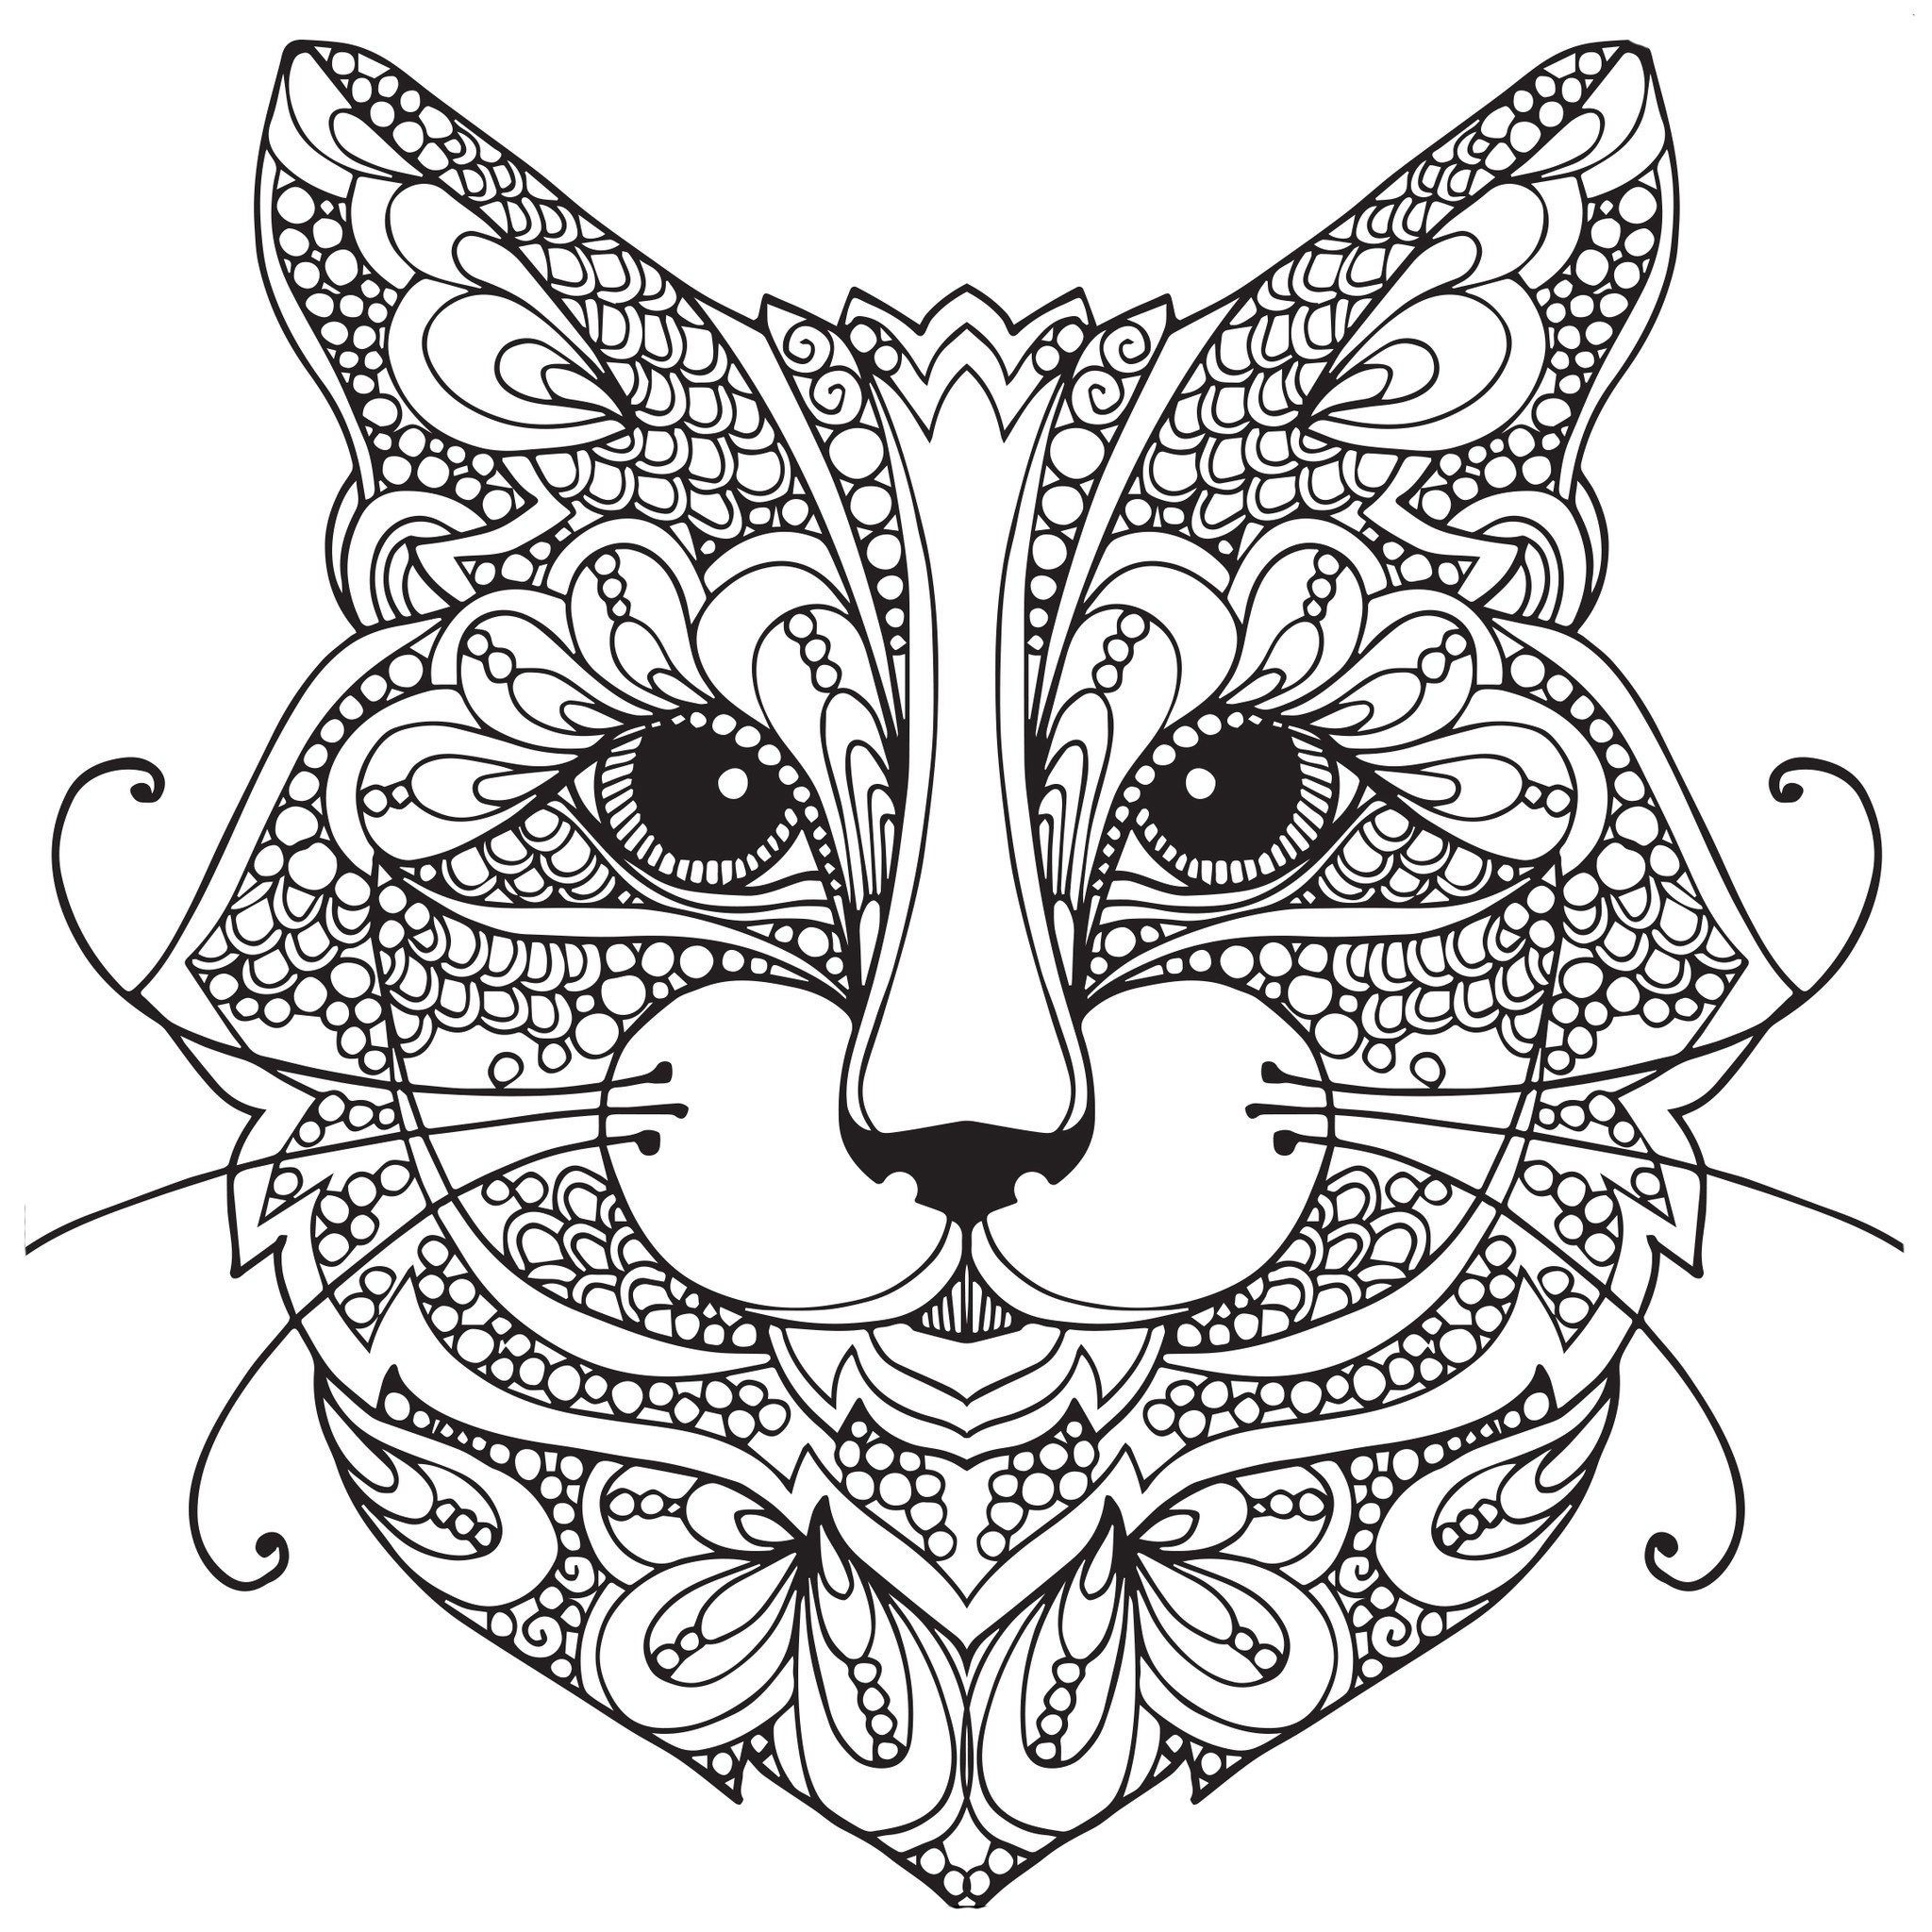 Best ideas about Cats Adult Coloring Books . Save or Pin Adult Coloring Pages Cat 1 coloring pages Now.